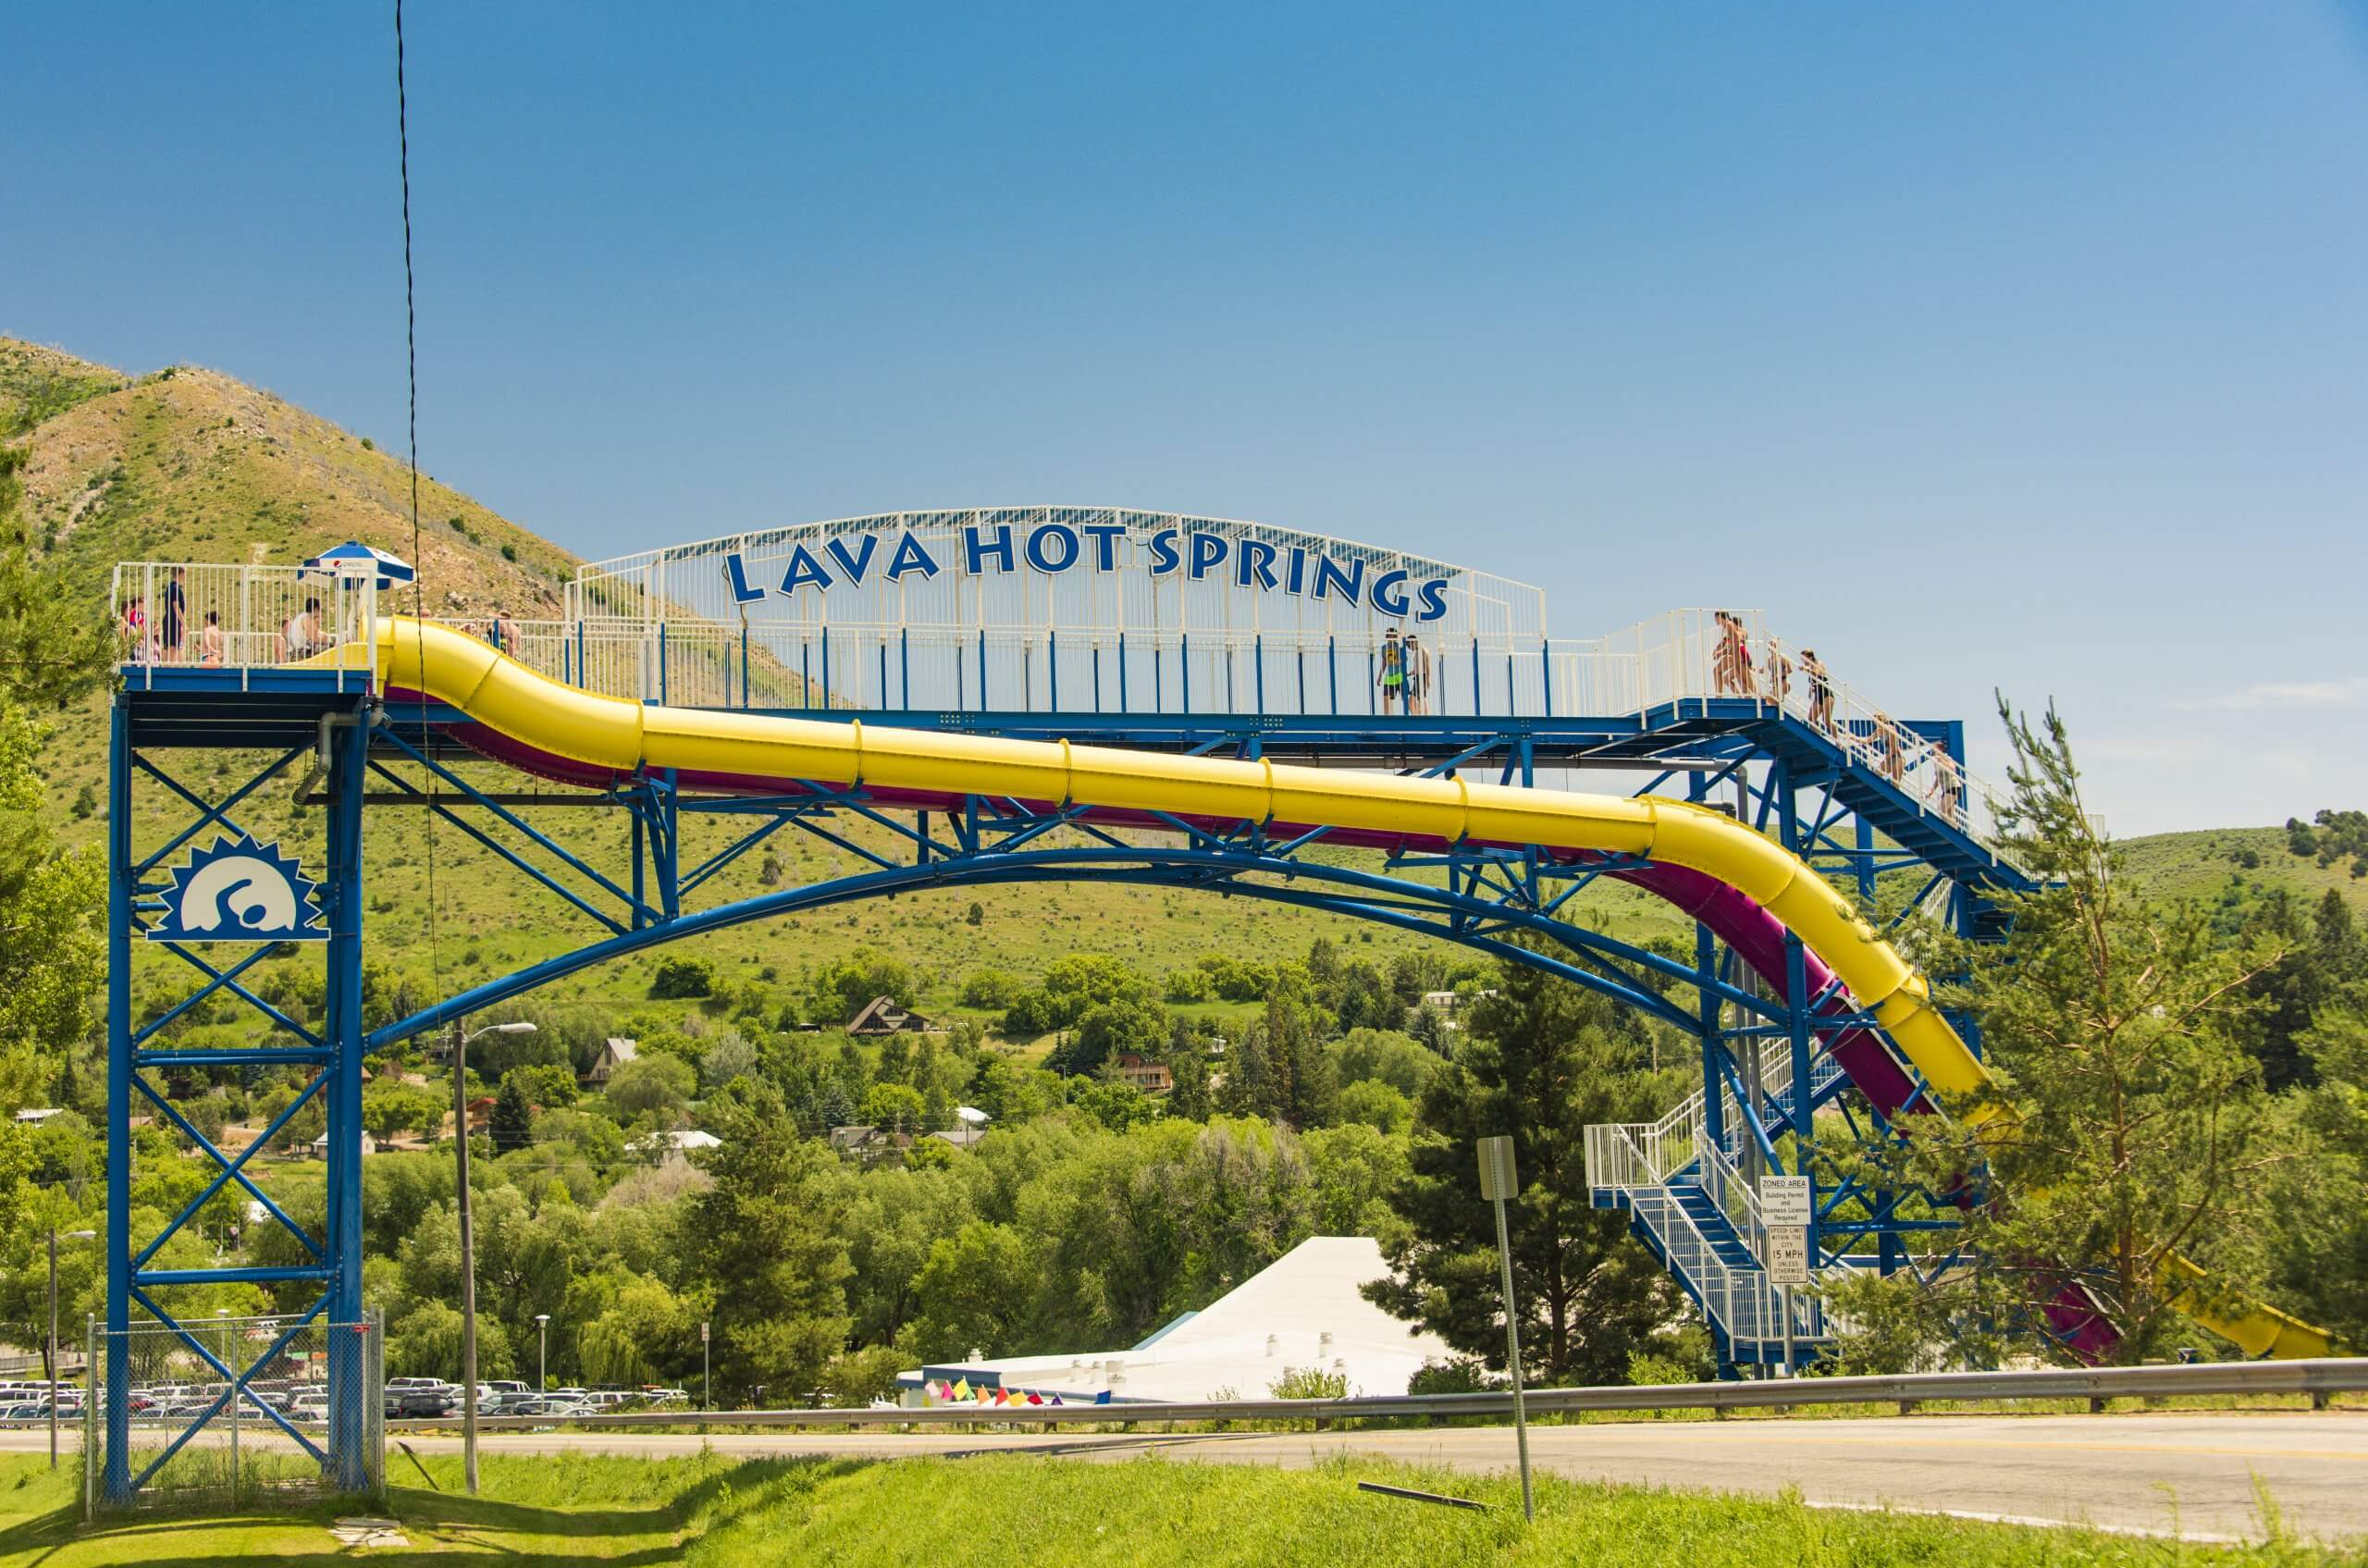 Lava Hot Springs Olympic Swimming Pool & Waterpark in the summer.